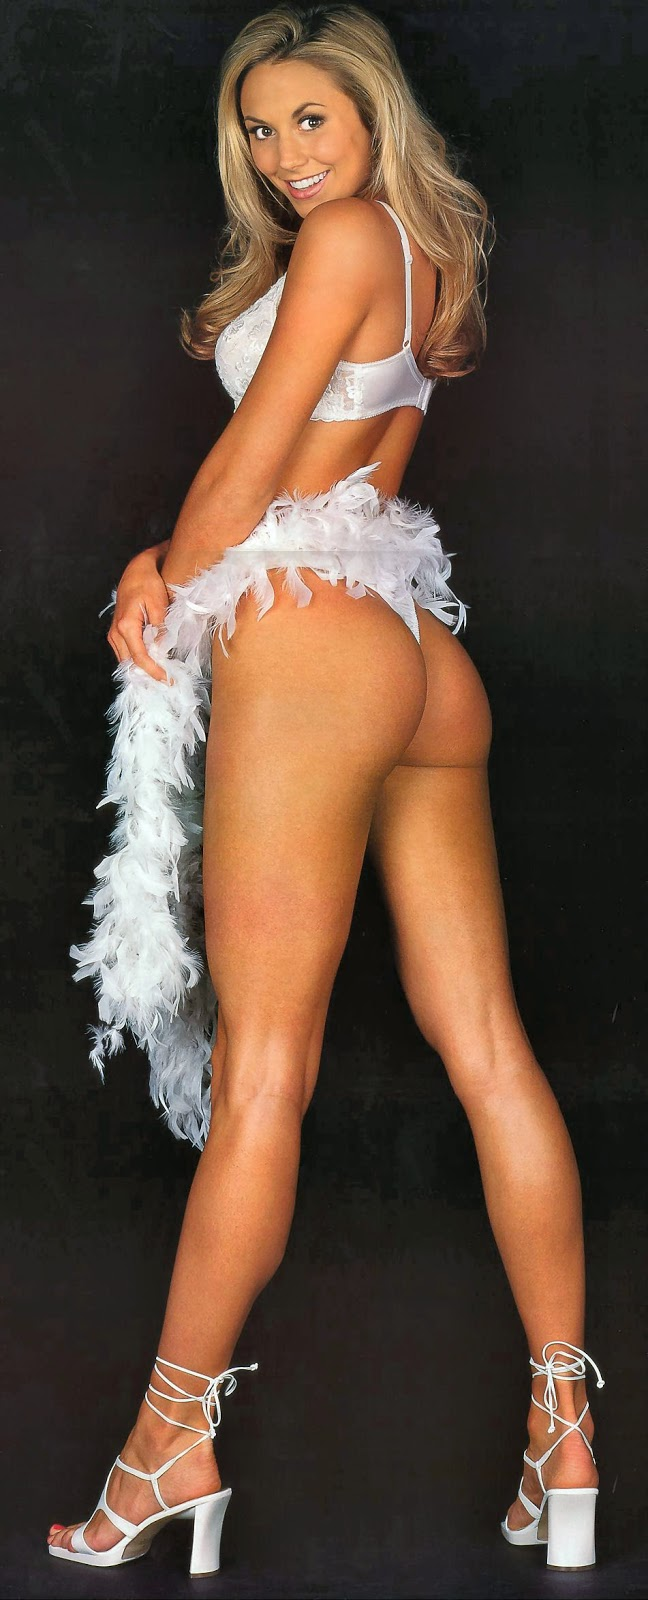 long sexy legs and ass of Stacy Keibler